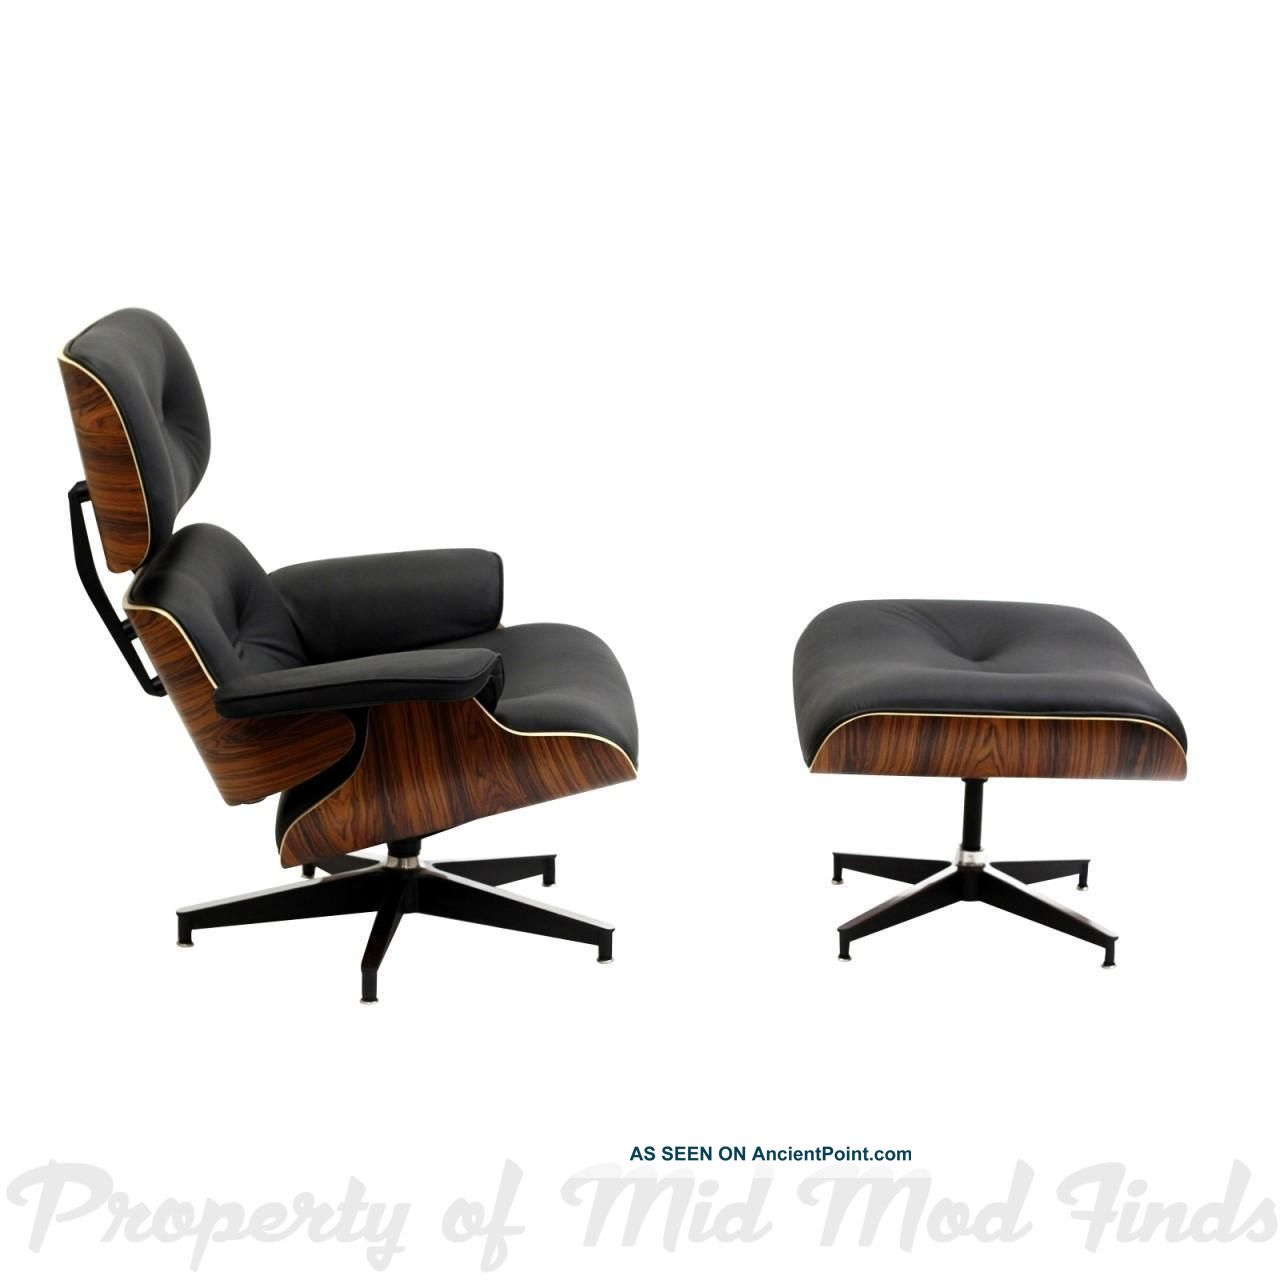 Very Impressive portraiture of Style Lounge Chair And Ottoman In Black Leather With Palisander Wood  with #663B24 color and 1280x1280 pixels